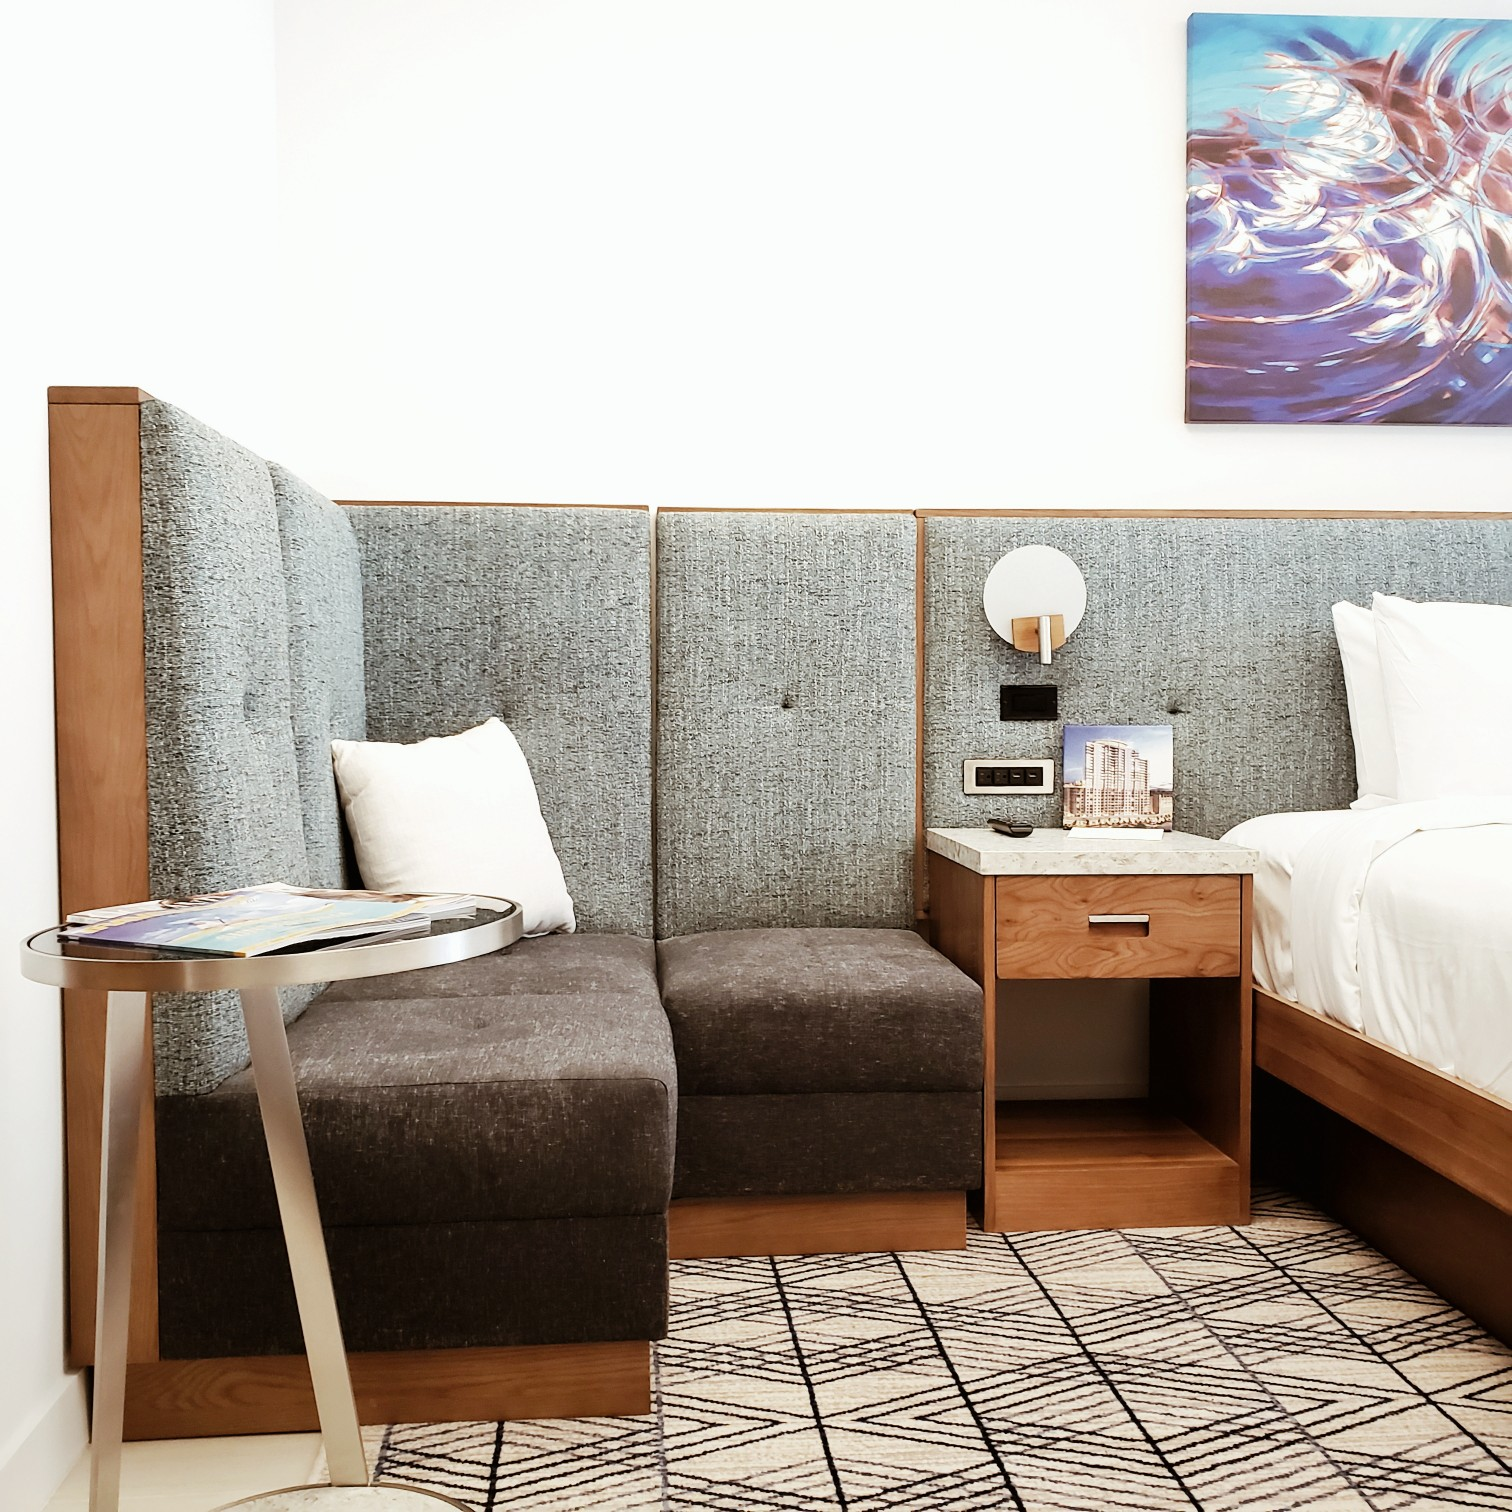 Circ Hotel Bedroom Attached Sofa Sitting